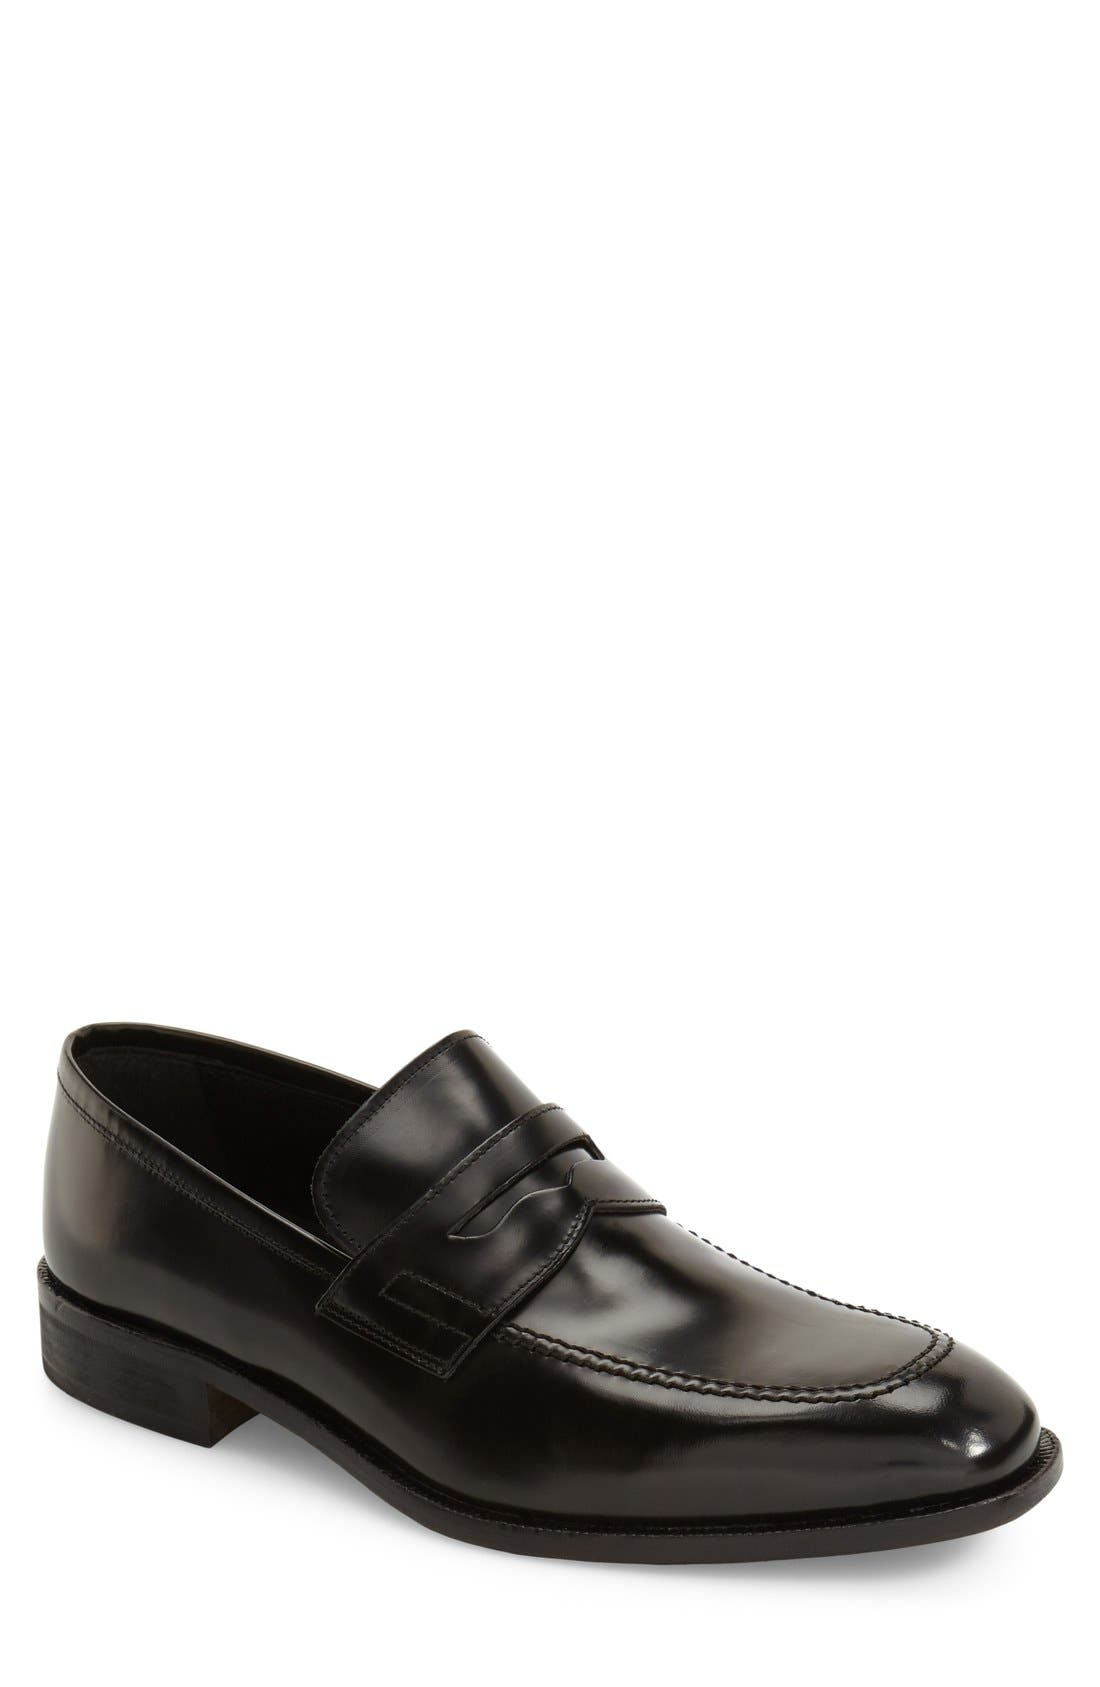 Suit Coat Penny Loafer, Main, color, 001